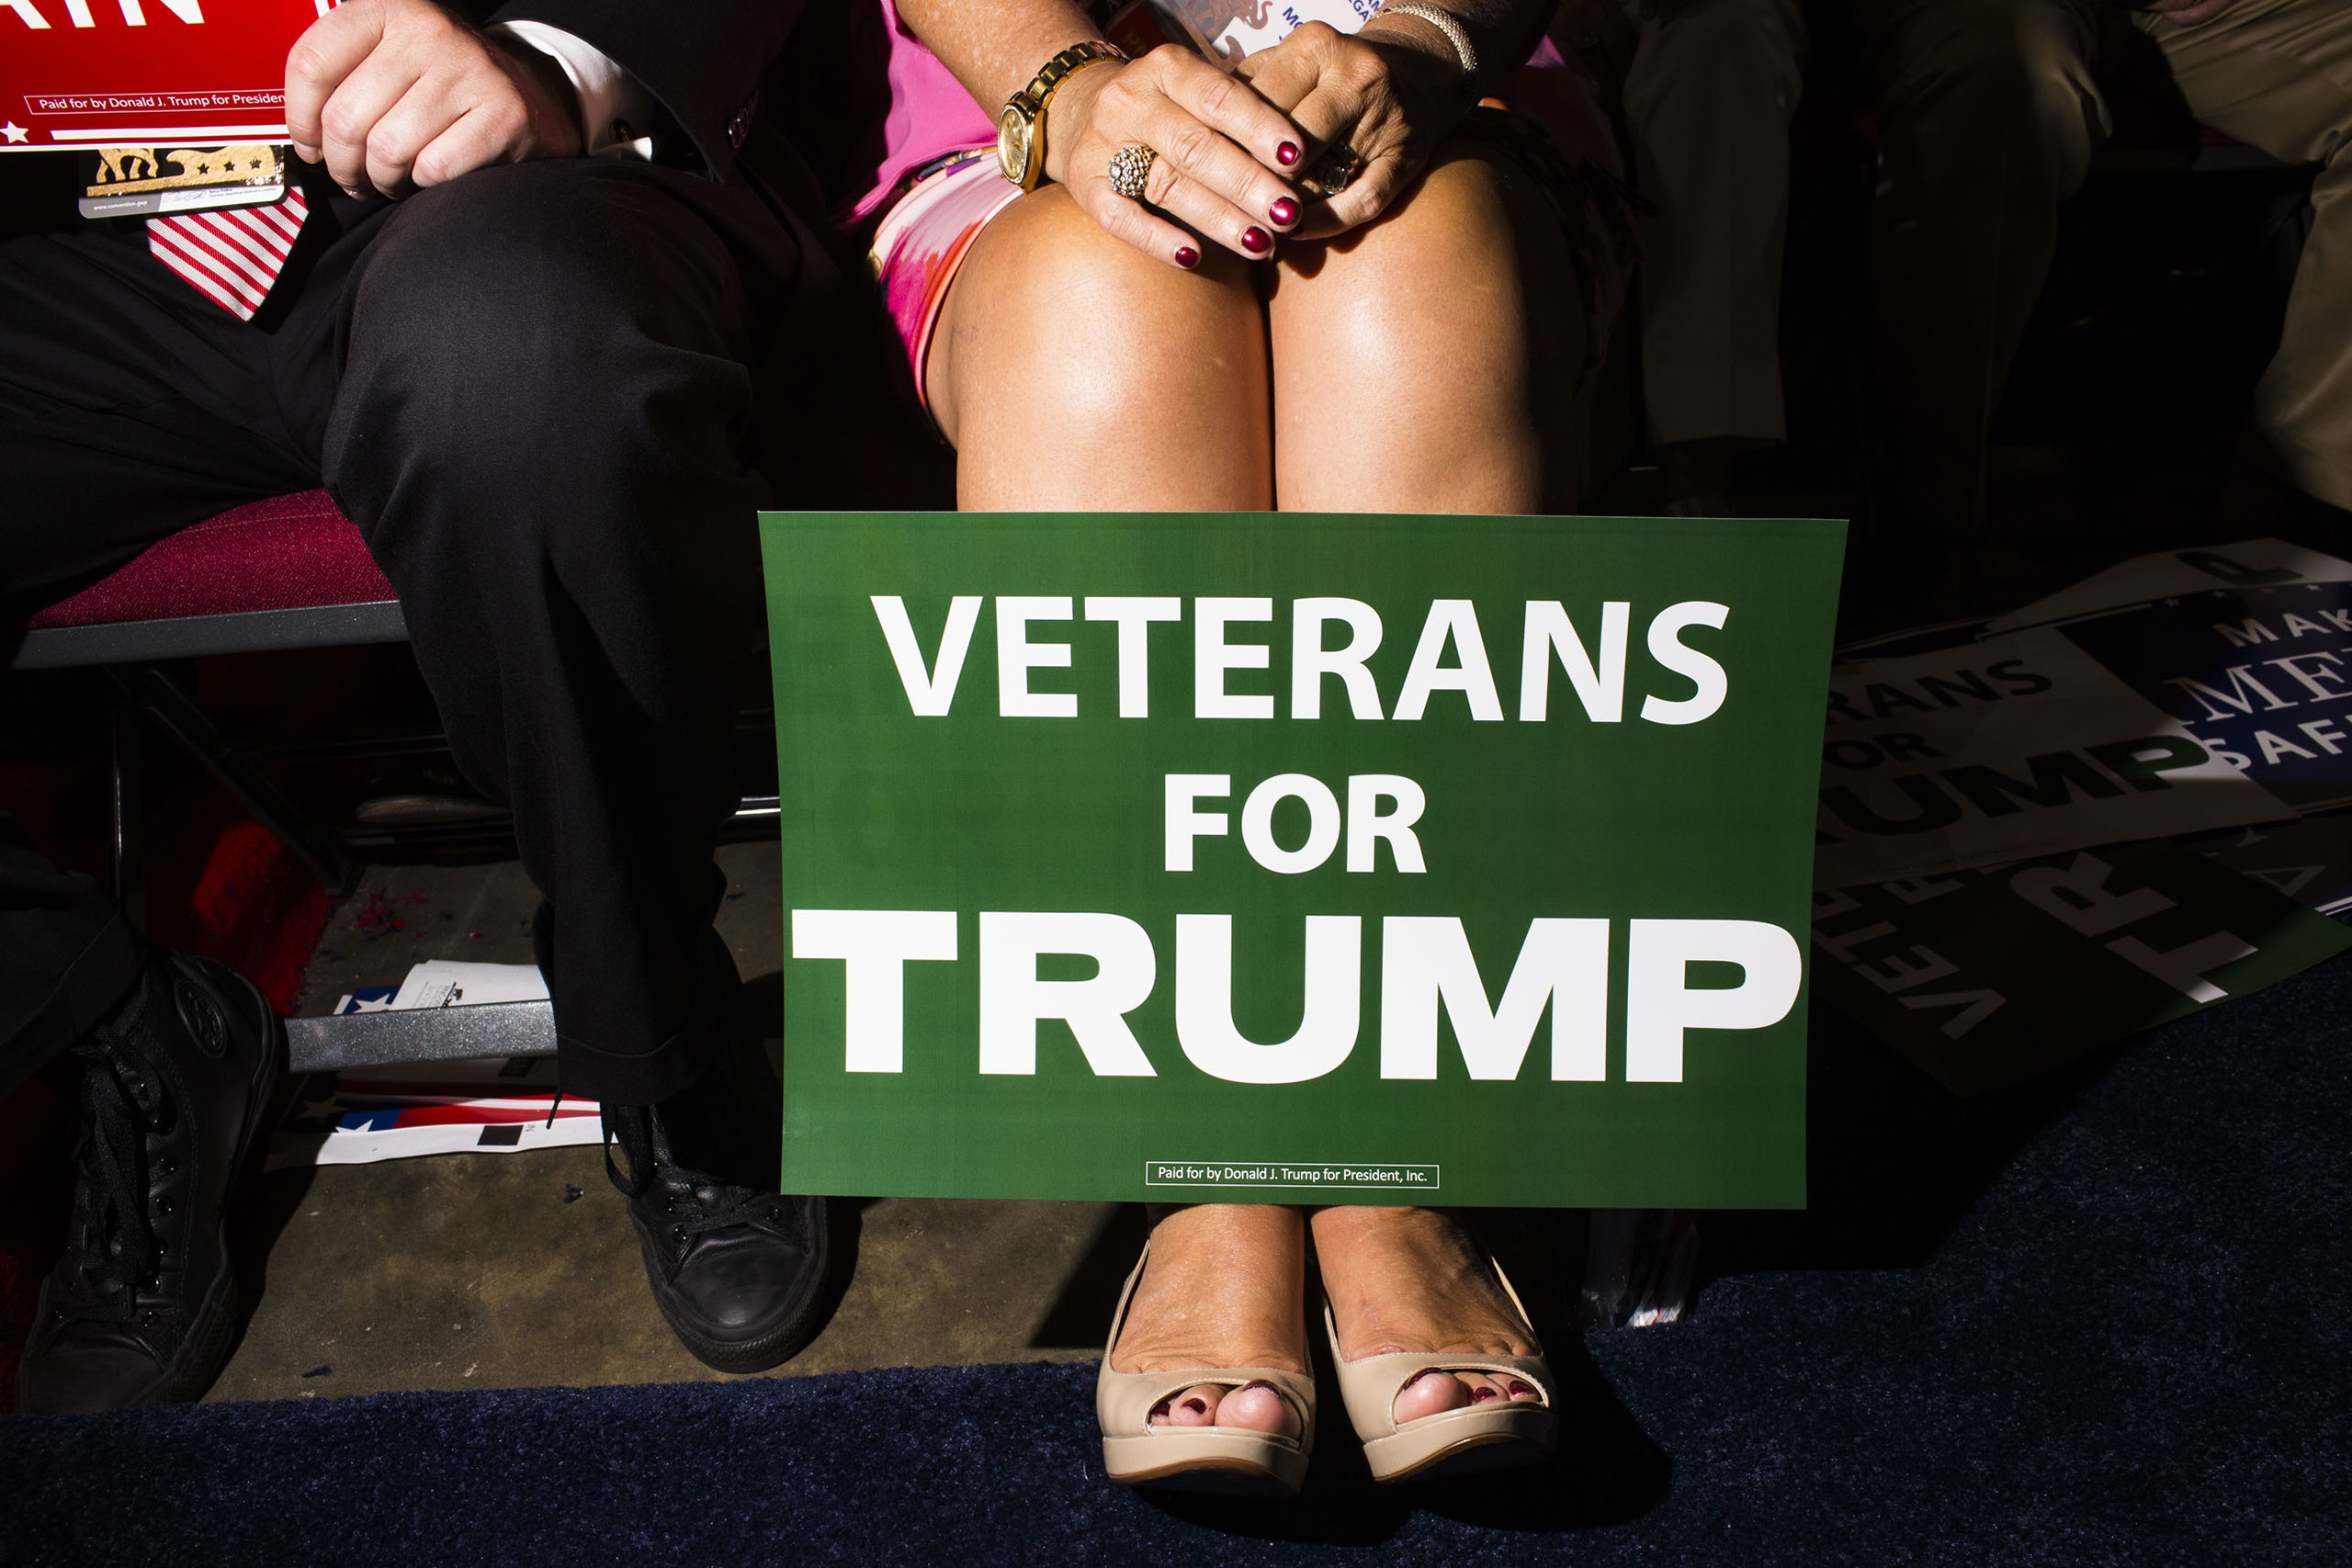 Veterans for Trump supporter on the floor at the Republican National Convention, July 18, 2016 in Cleveland.